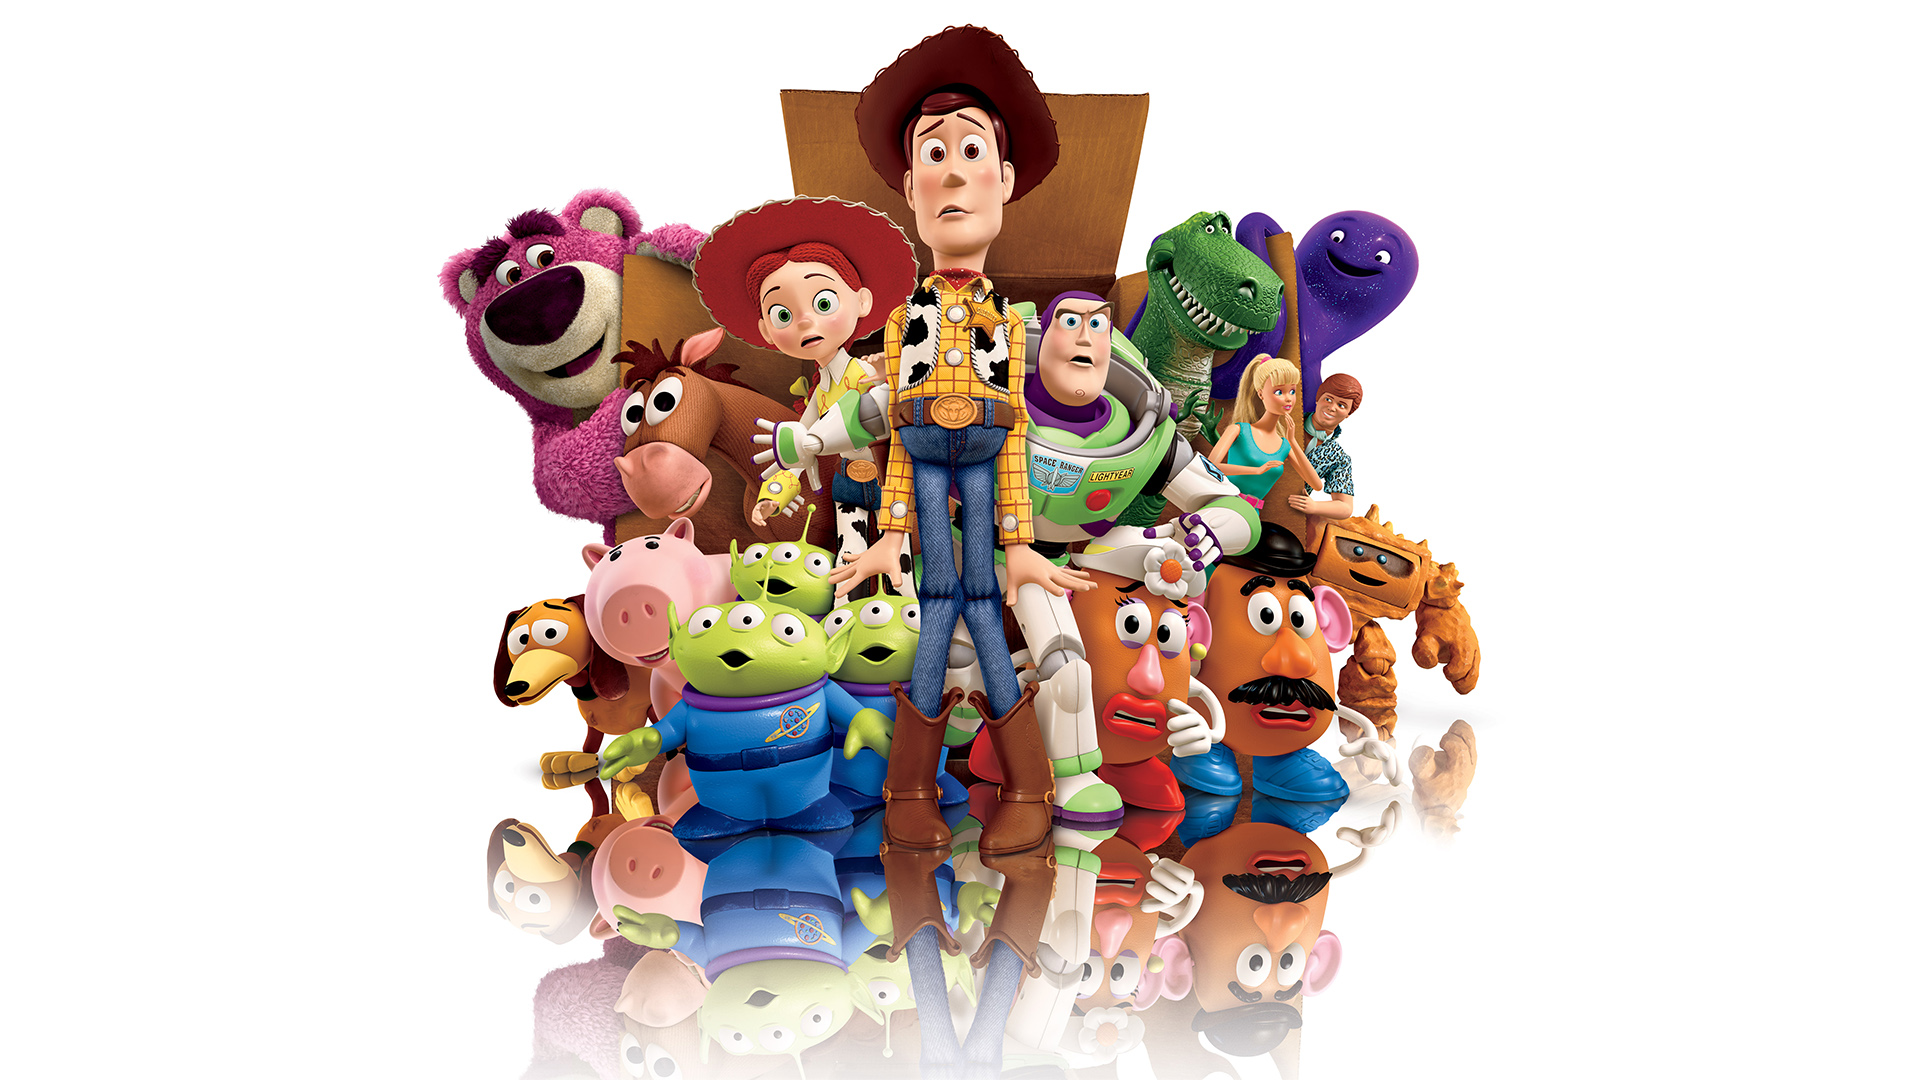 Disney and Pixar announce fourth Toy Story film | Blastr